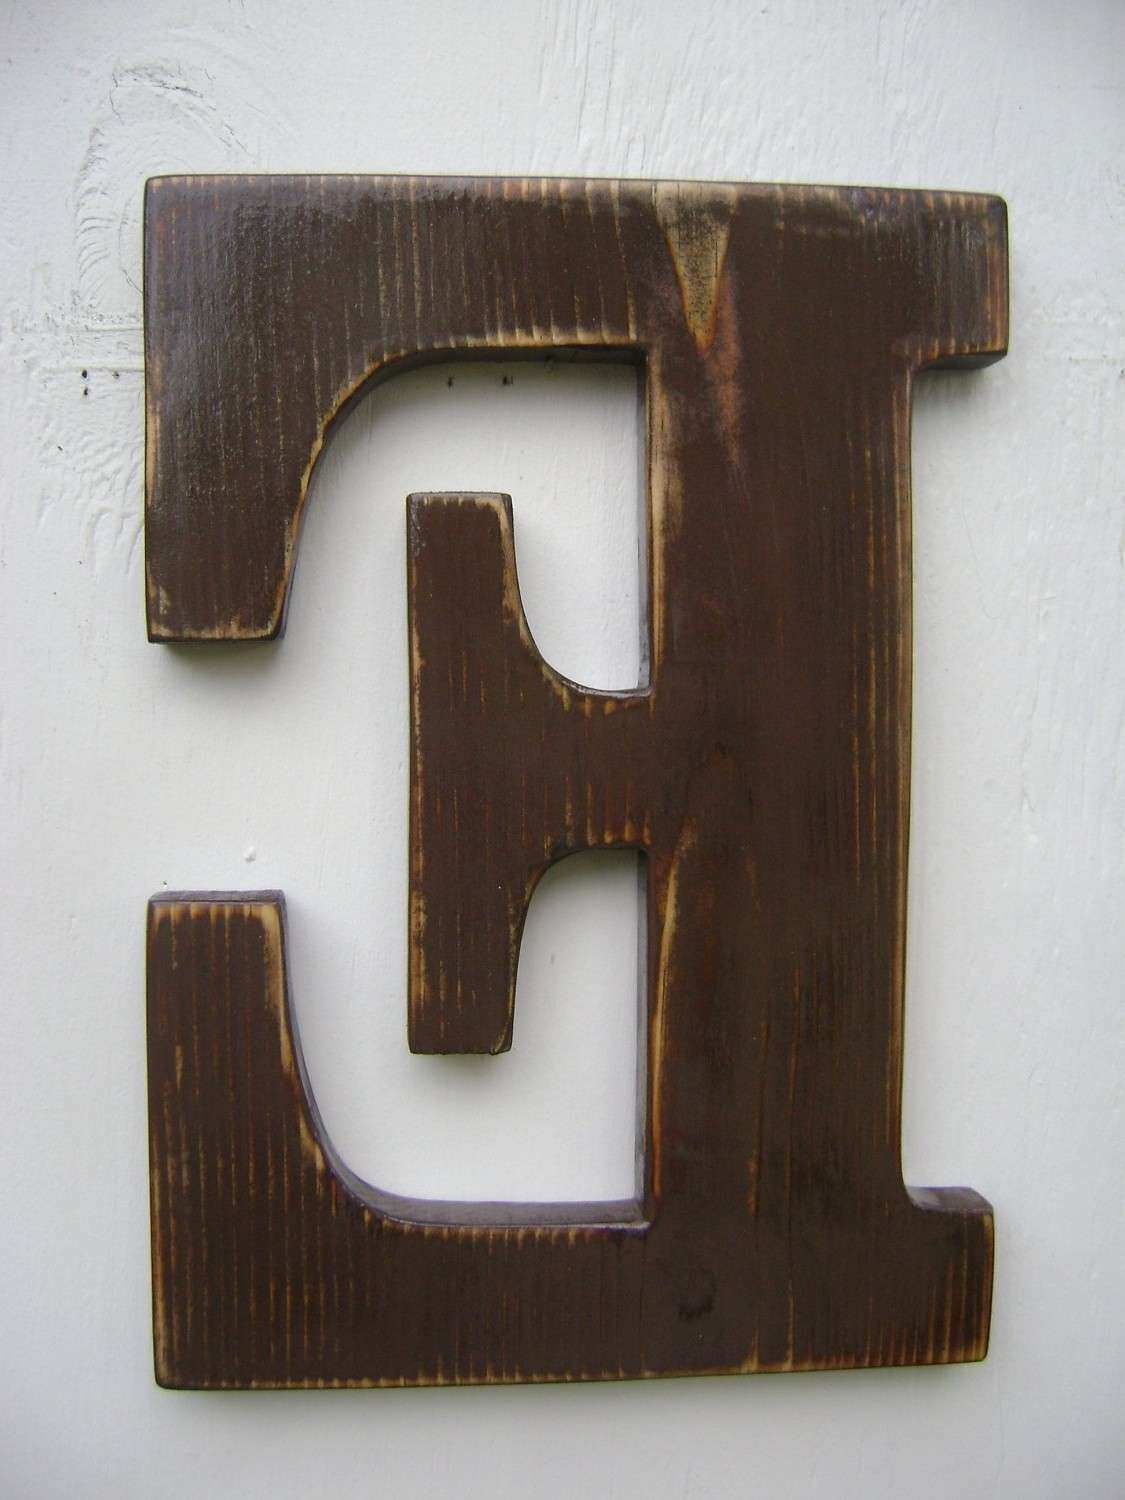 Wall Decor Letter C Wall Decor Ideas Letter C Wall Decor